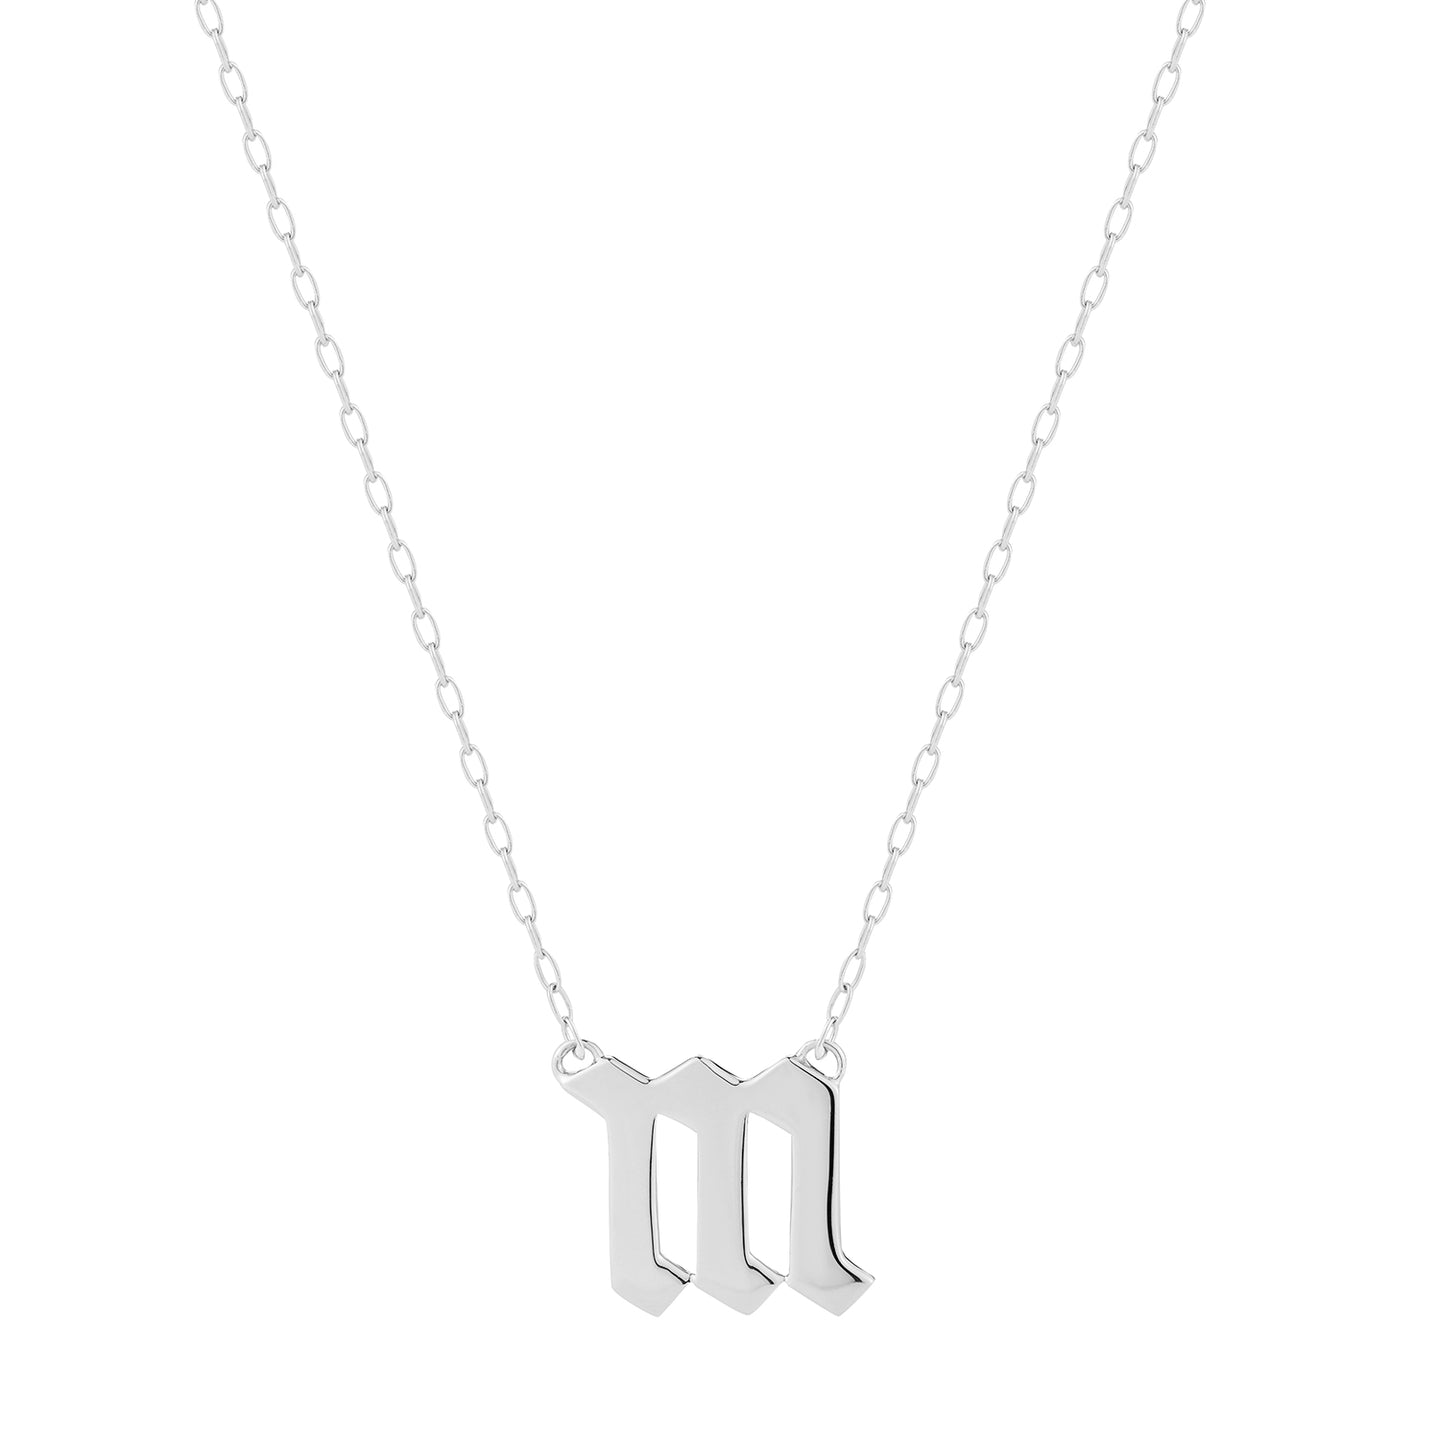 Small Gothic Letter Pendant Necklace